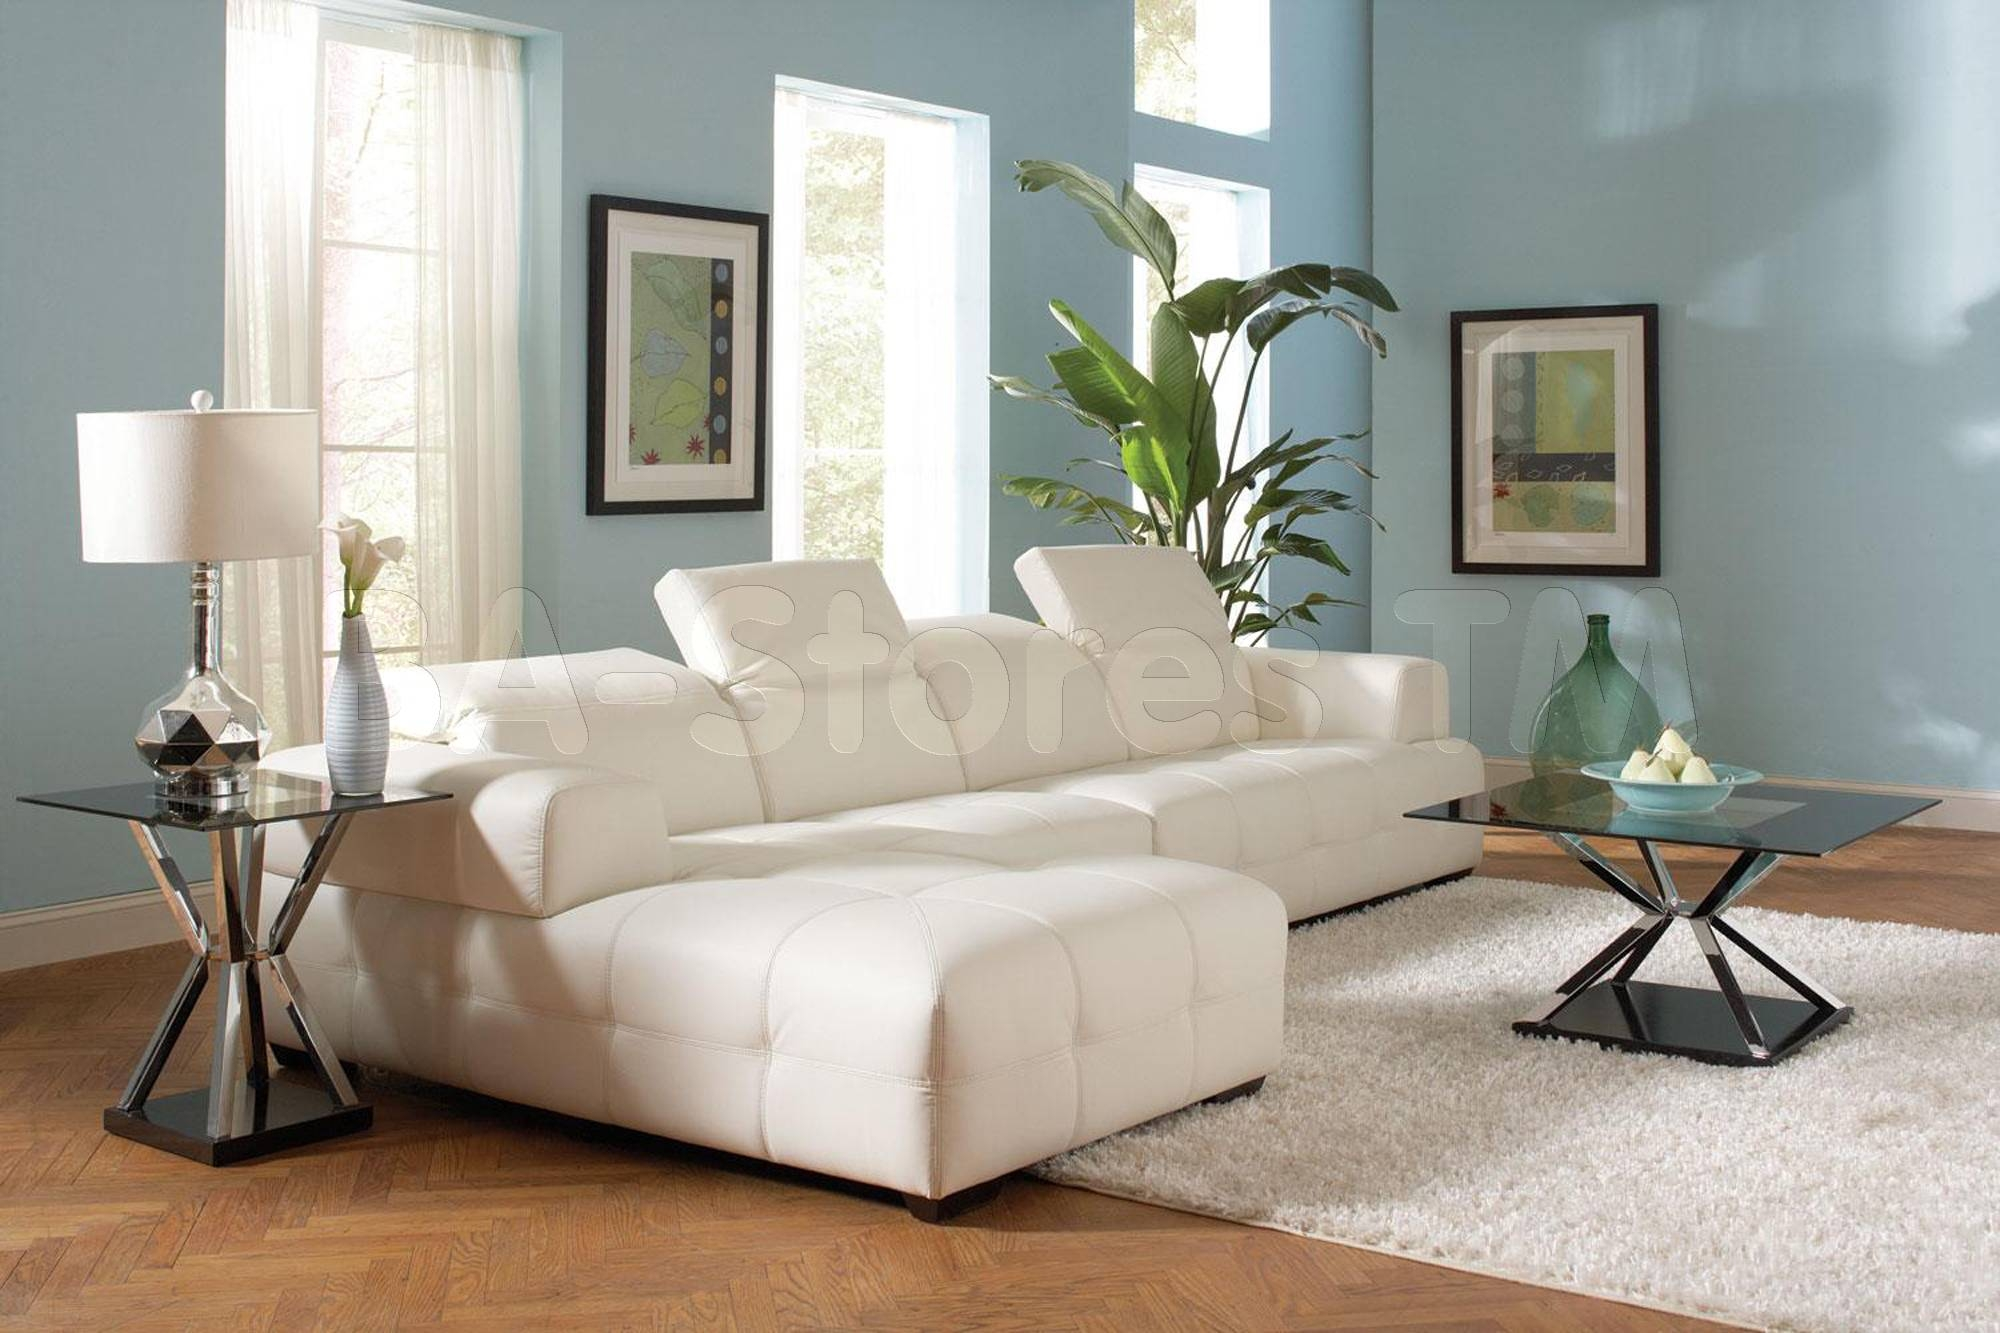 Darby White Sectional Sofa & Armless Chair | Sectional Sofas Coa Inside Armless Sectional Sofas (Photo 25 of 30)